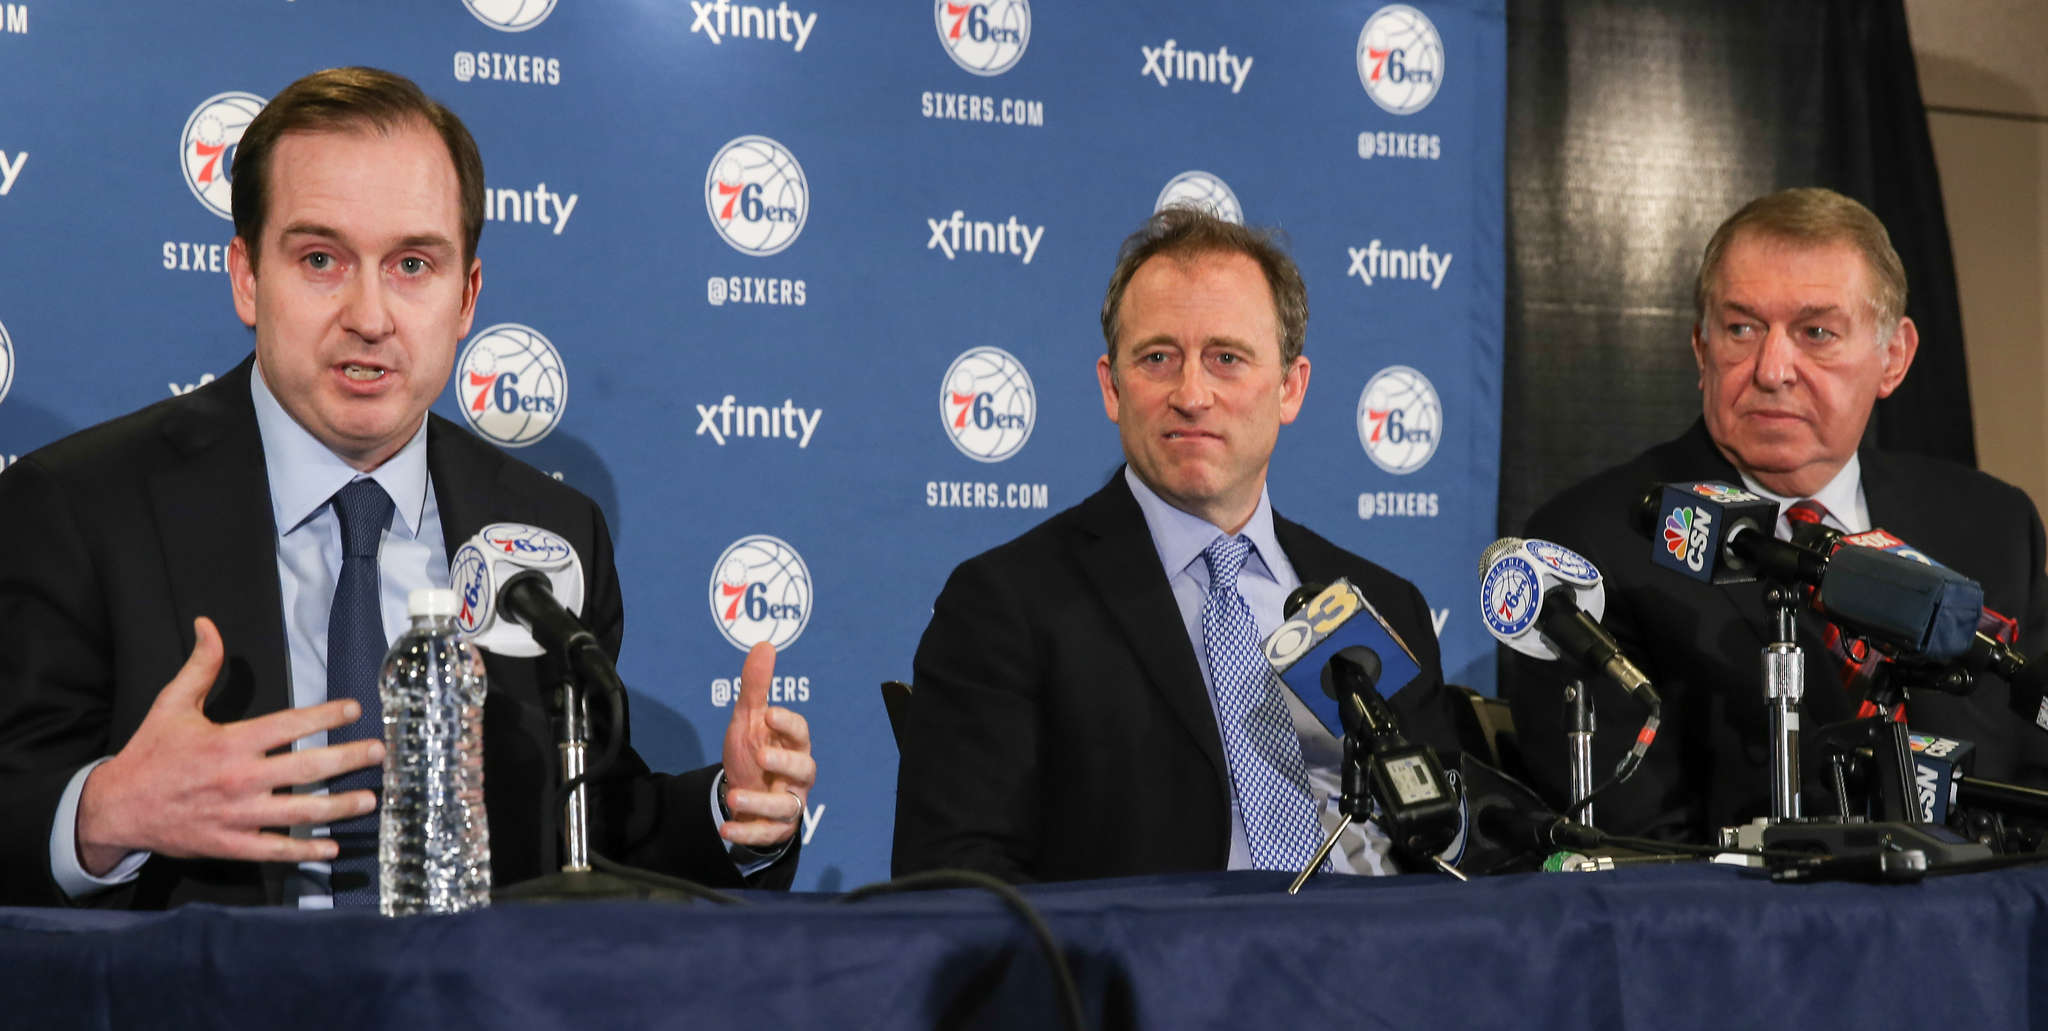 Sam Hinkie (left) figures to see his ´process´ end now that Jerry Colangelo (right, with Sixers owner Josh Harris) has announced he´ll hire an experienced ´basketball mind´ to create the ´strongest front office in the league.´ STEVEN M. FALK / Staff Photographer